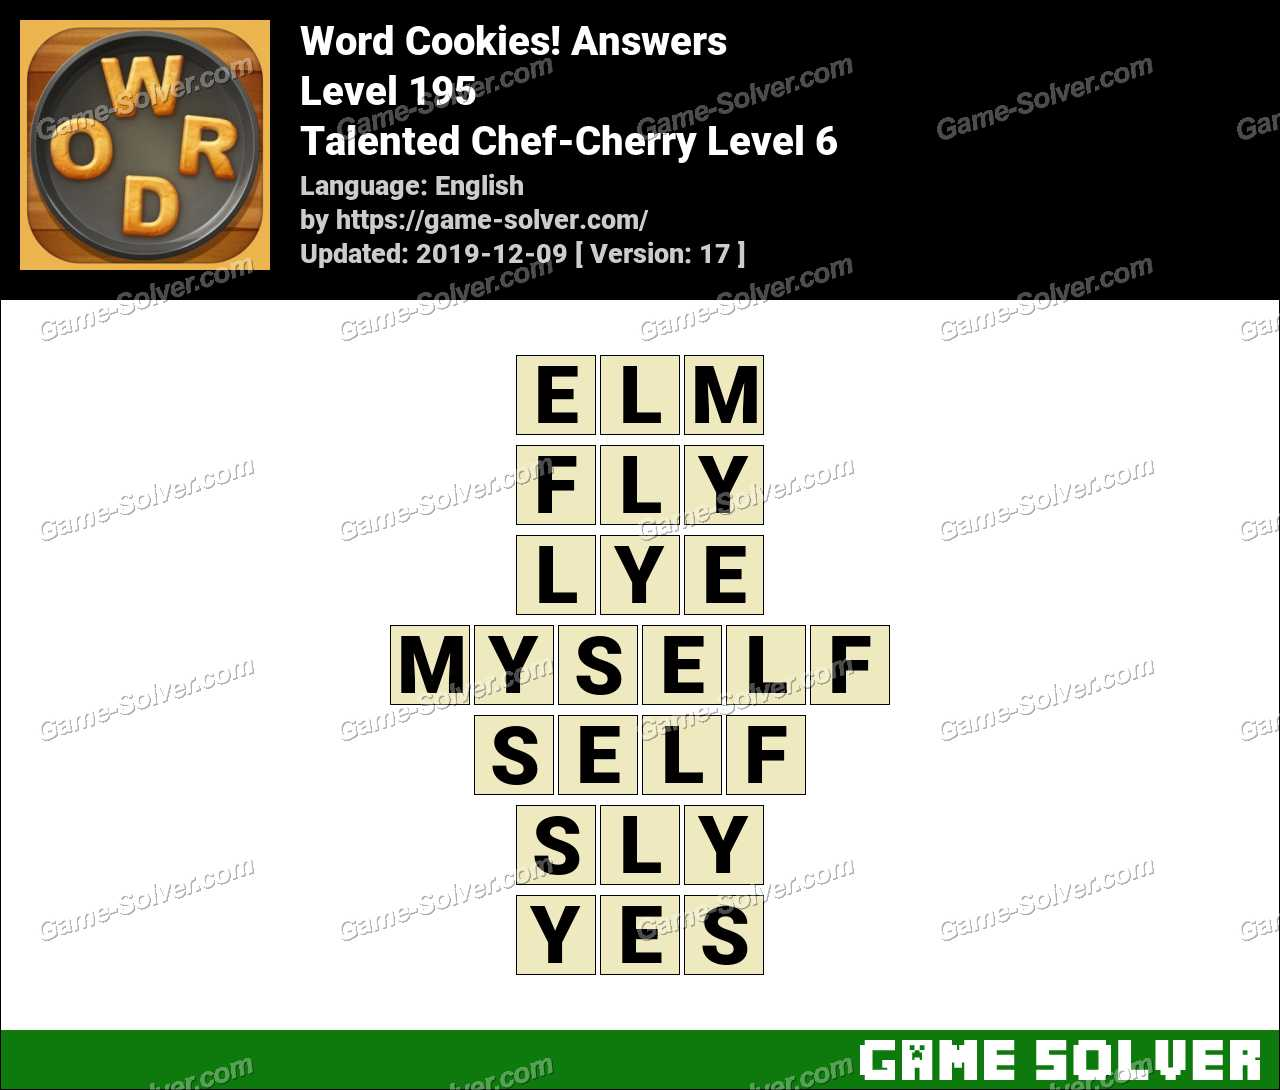 Word Cookies Talented Chef-Cherry Level 6 Answers